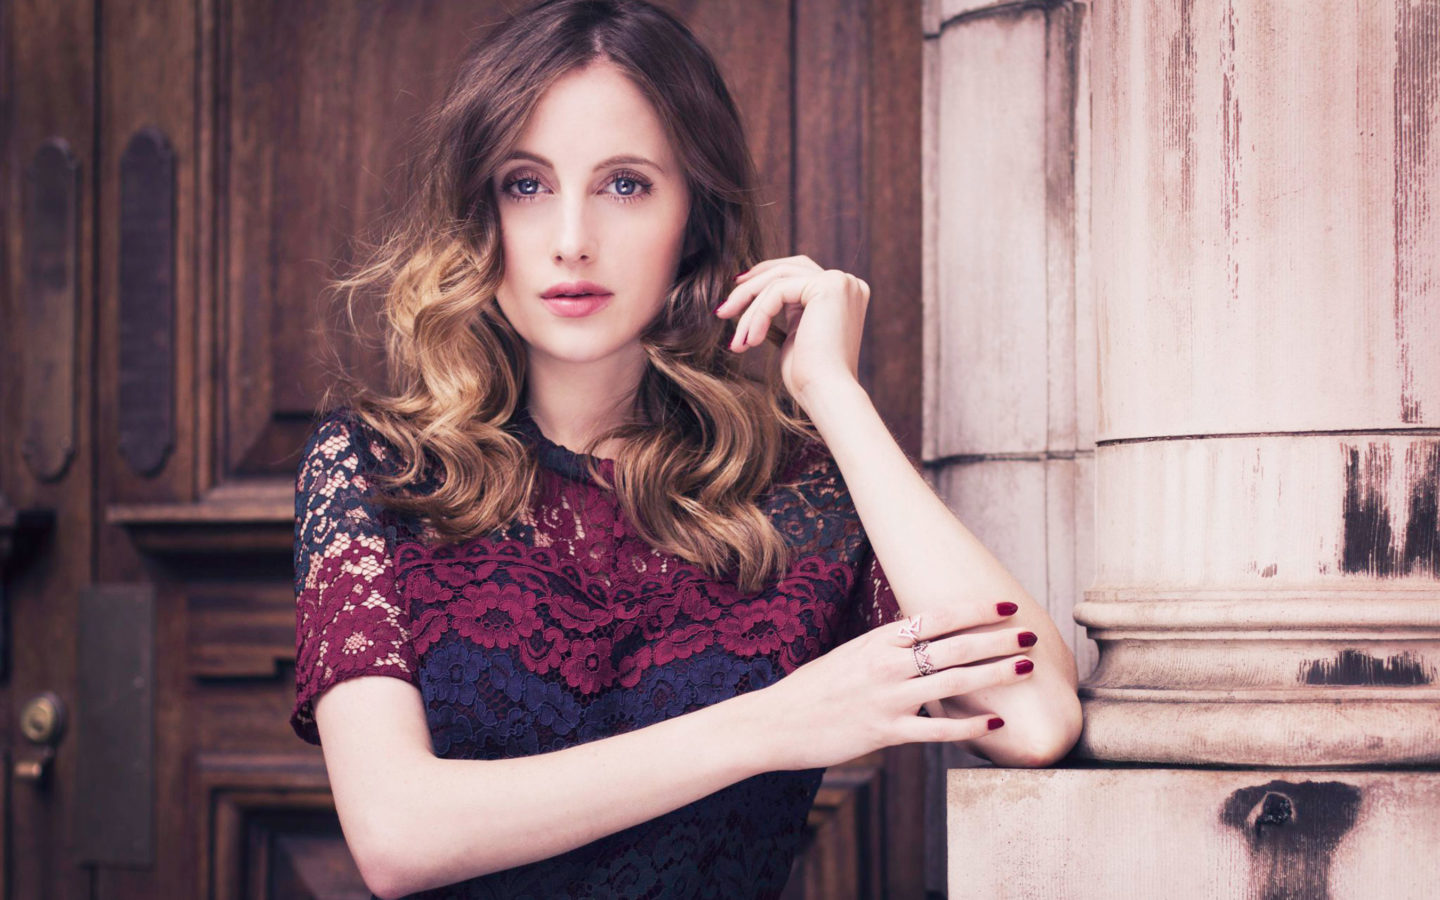 1440x900 - Rosie Fortescue Wallpapers 16